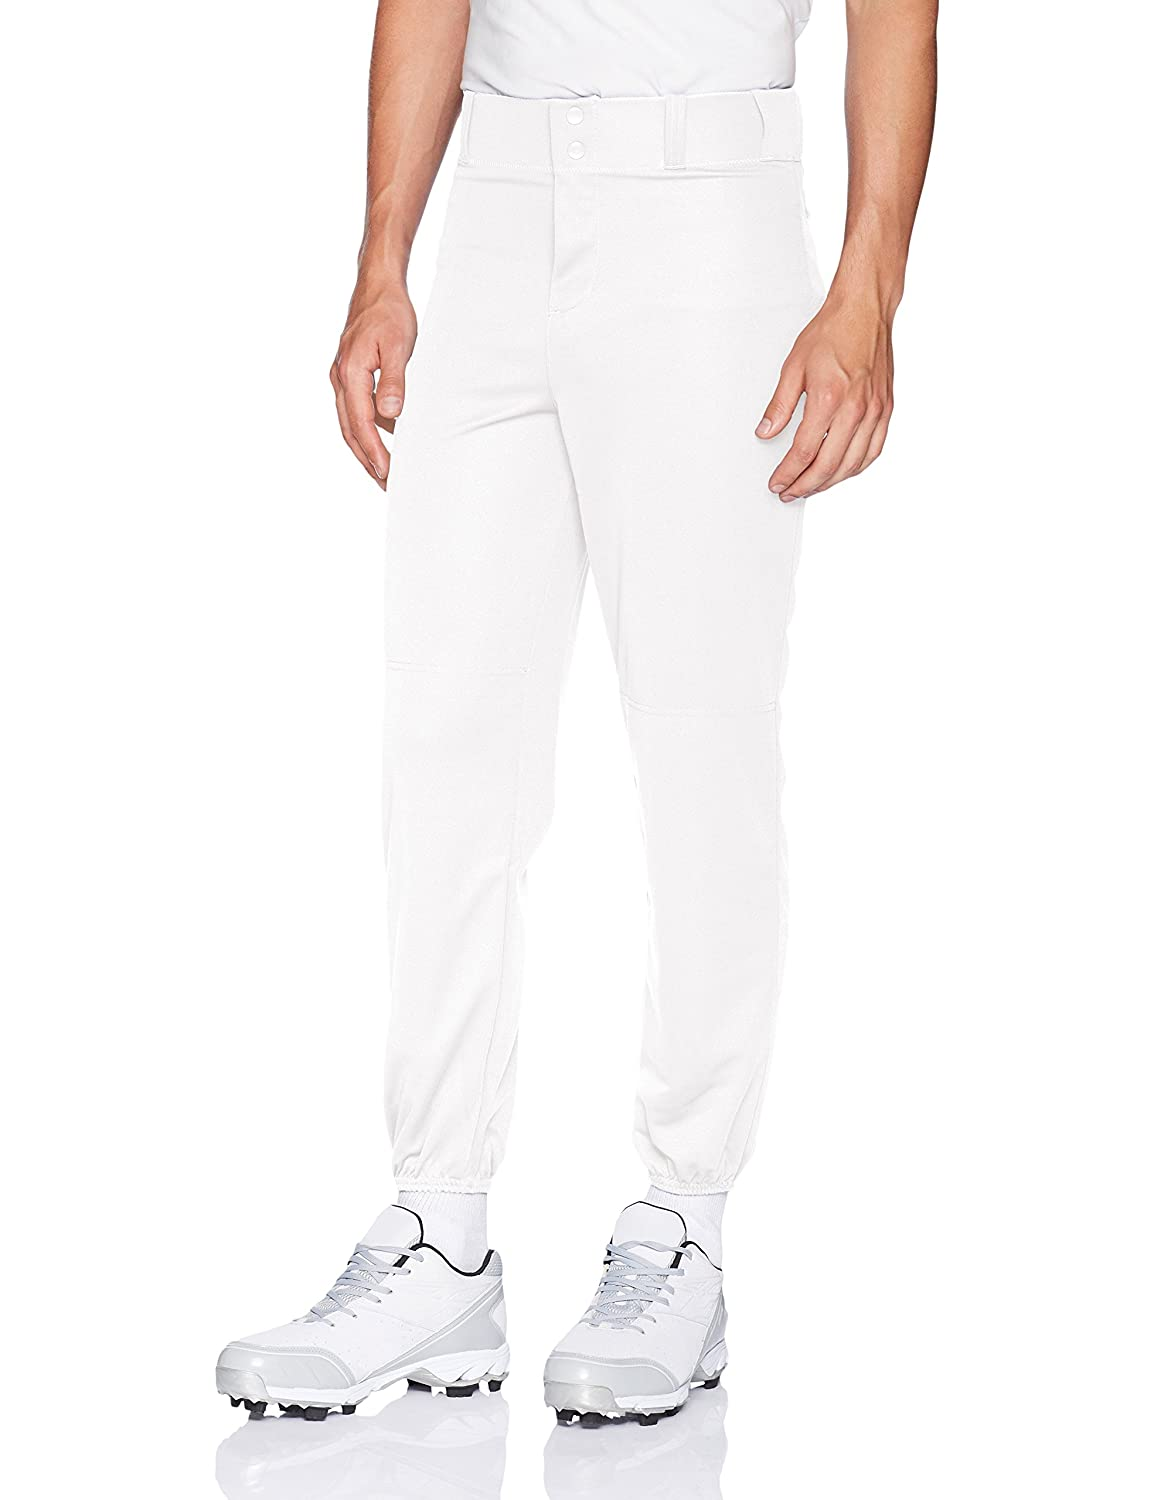 Belted Waist Baseball Pant - Adult Alleson Athletic